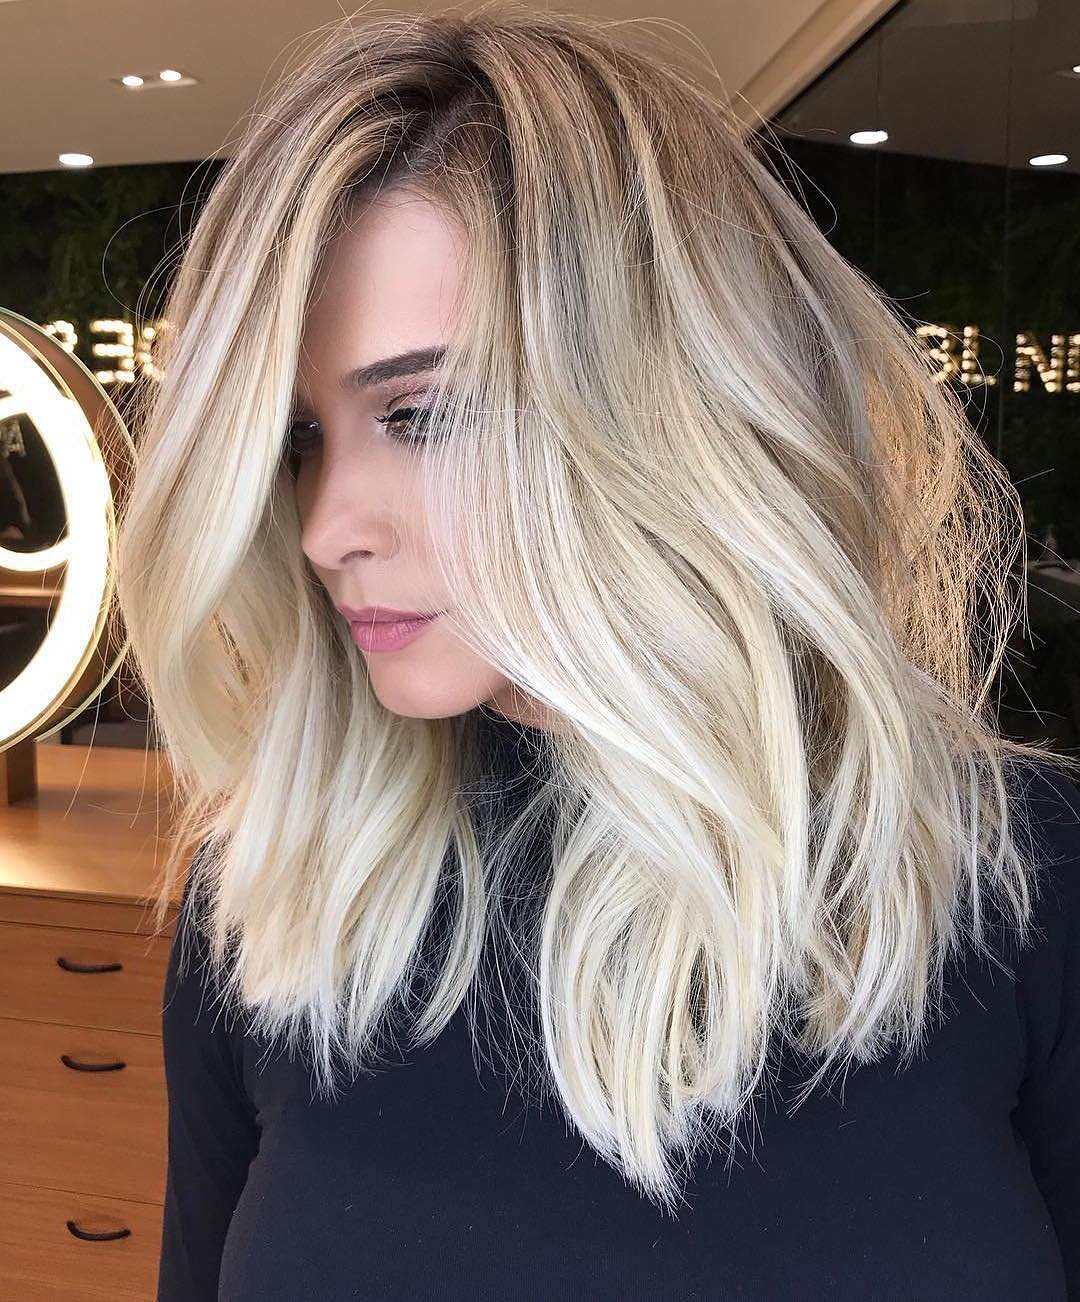 stylish ombre balayage hairstyles for shoulder length hair